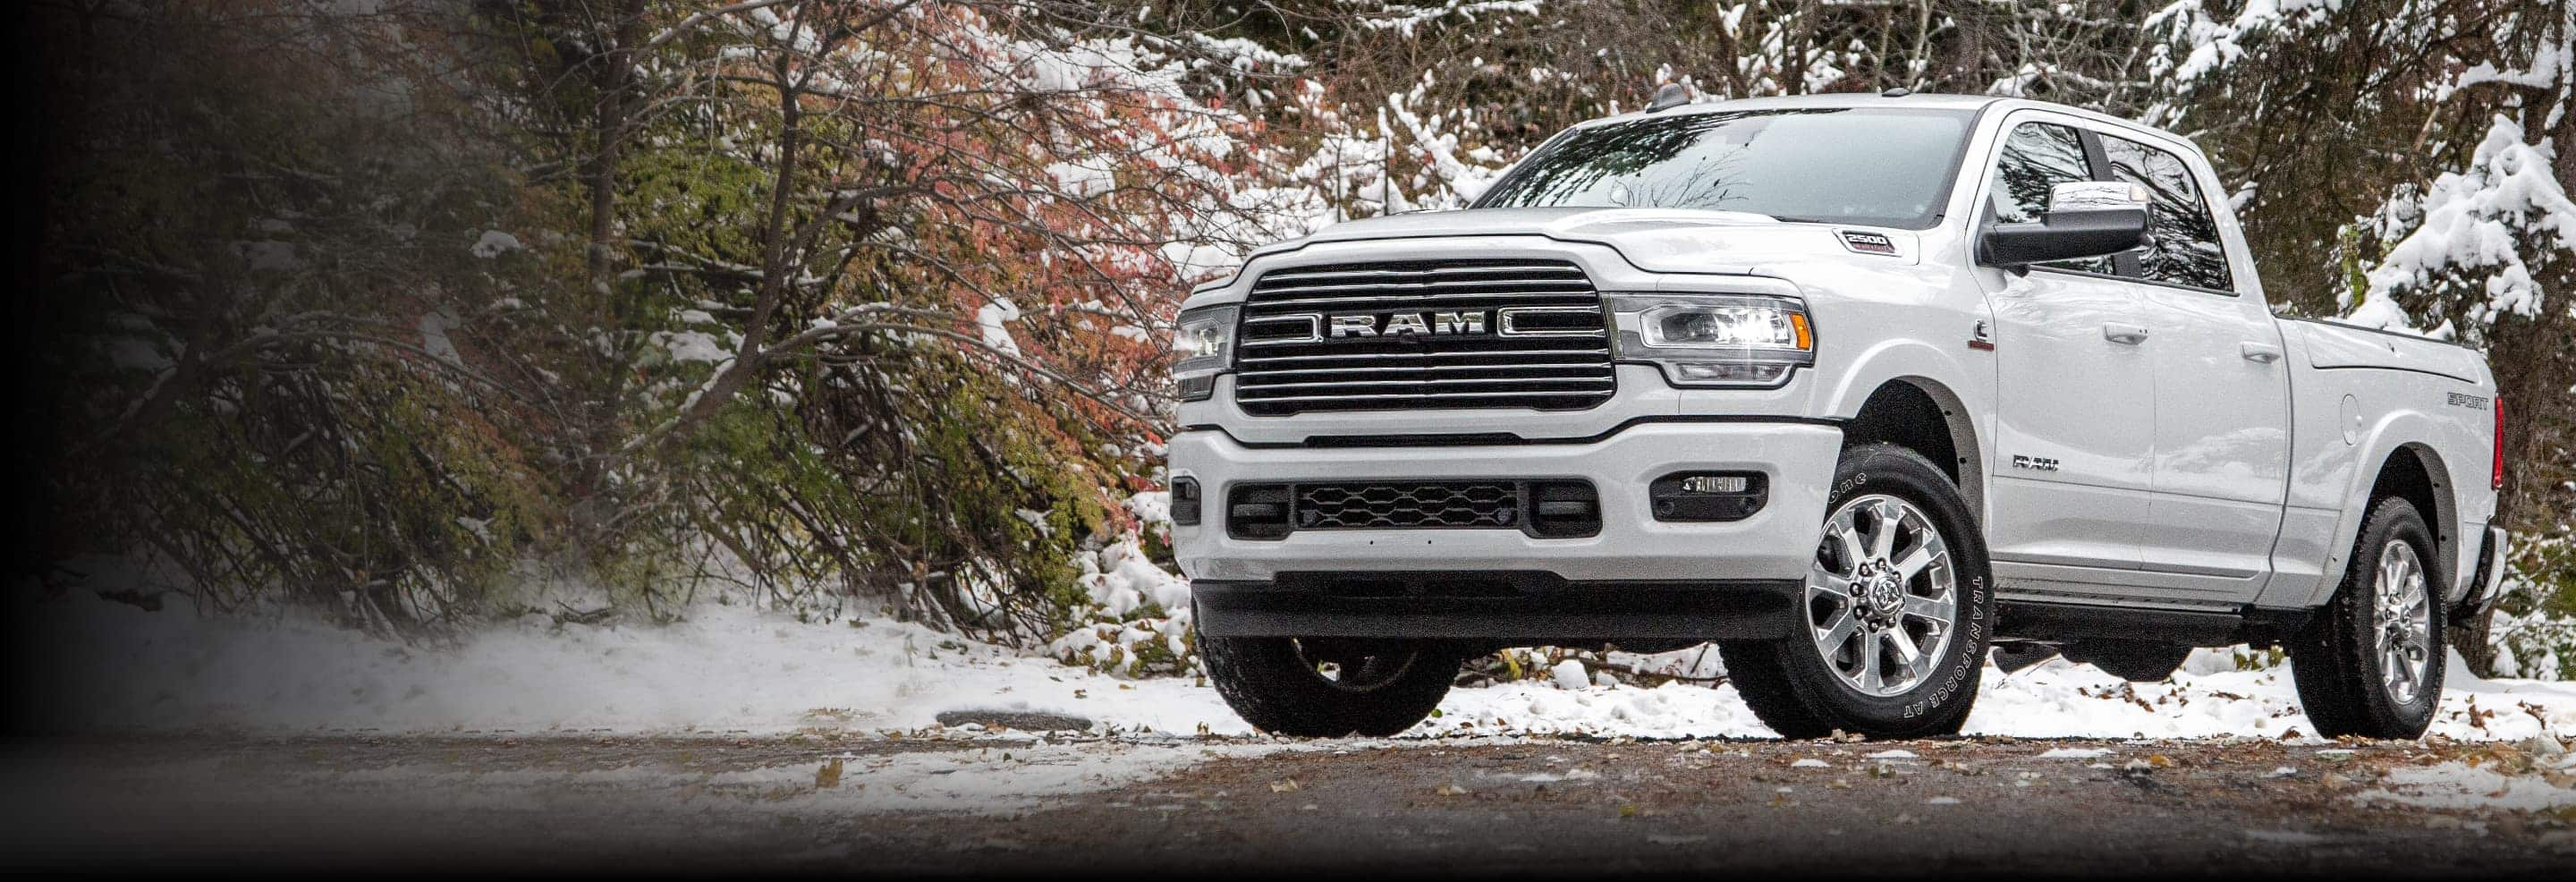 A 2021 Ram 2500 Laramie parked on a trail in snow-covered woods.